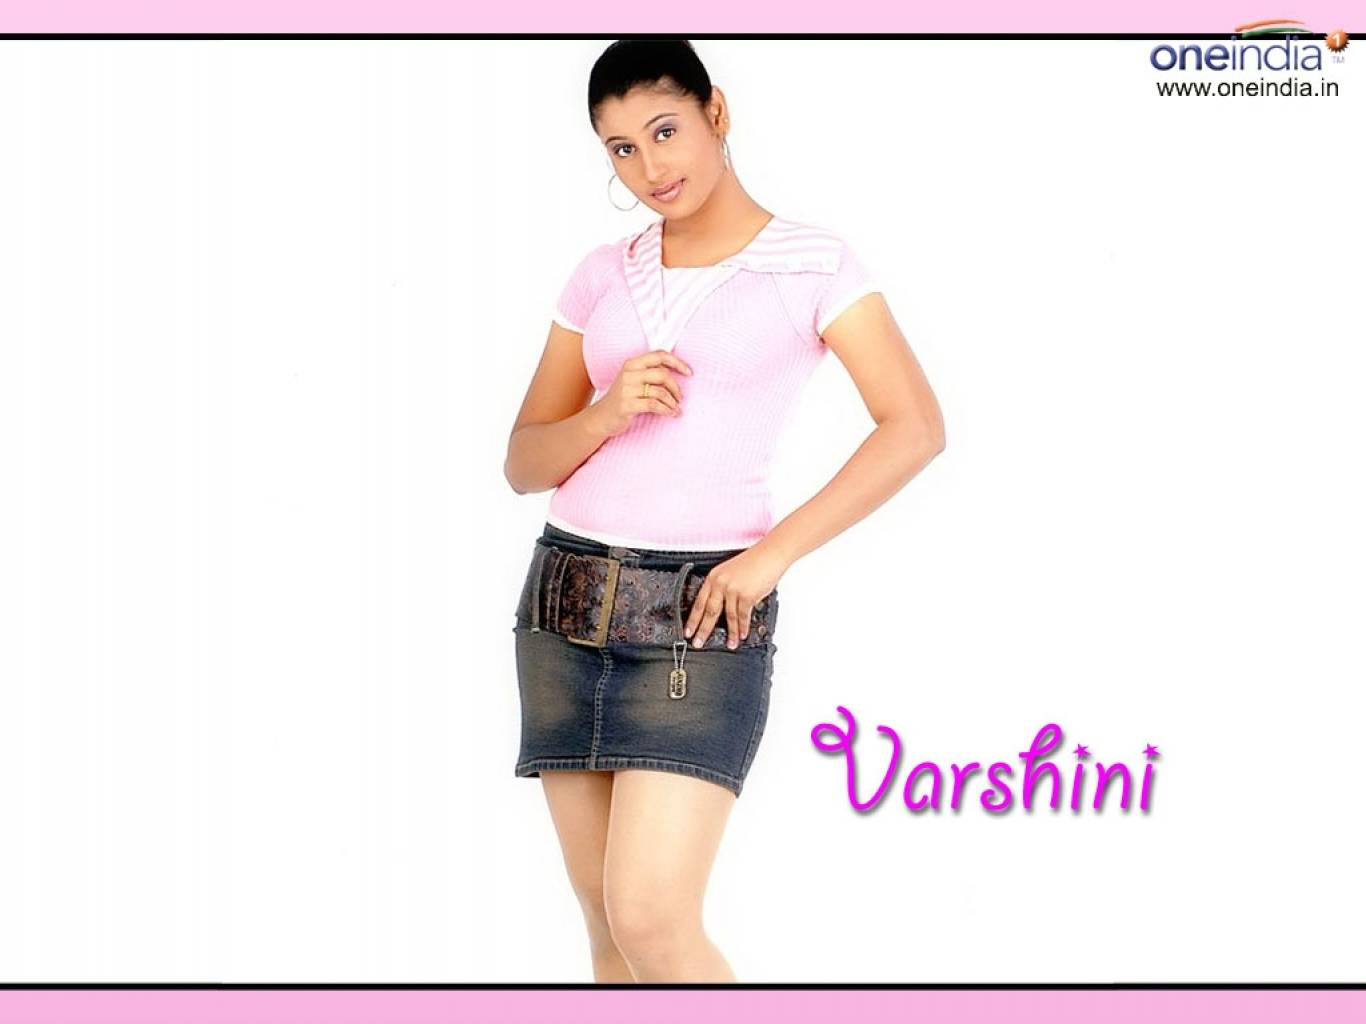 Varshini Wallpapers